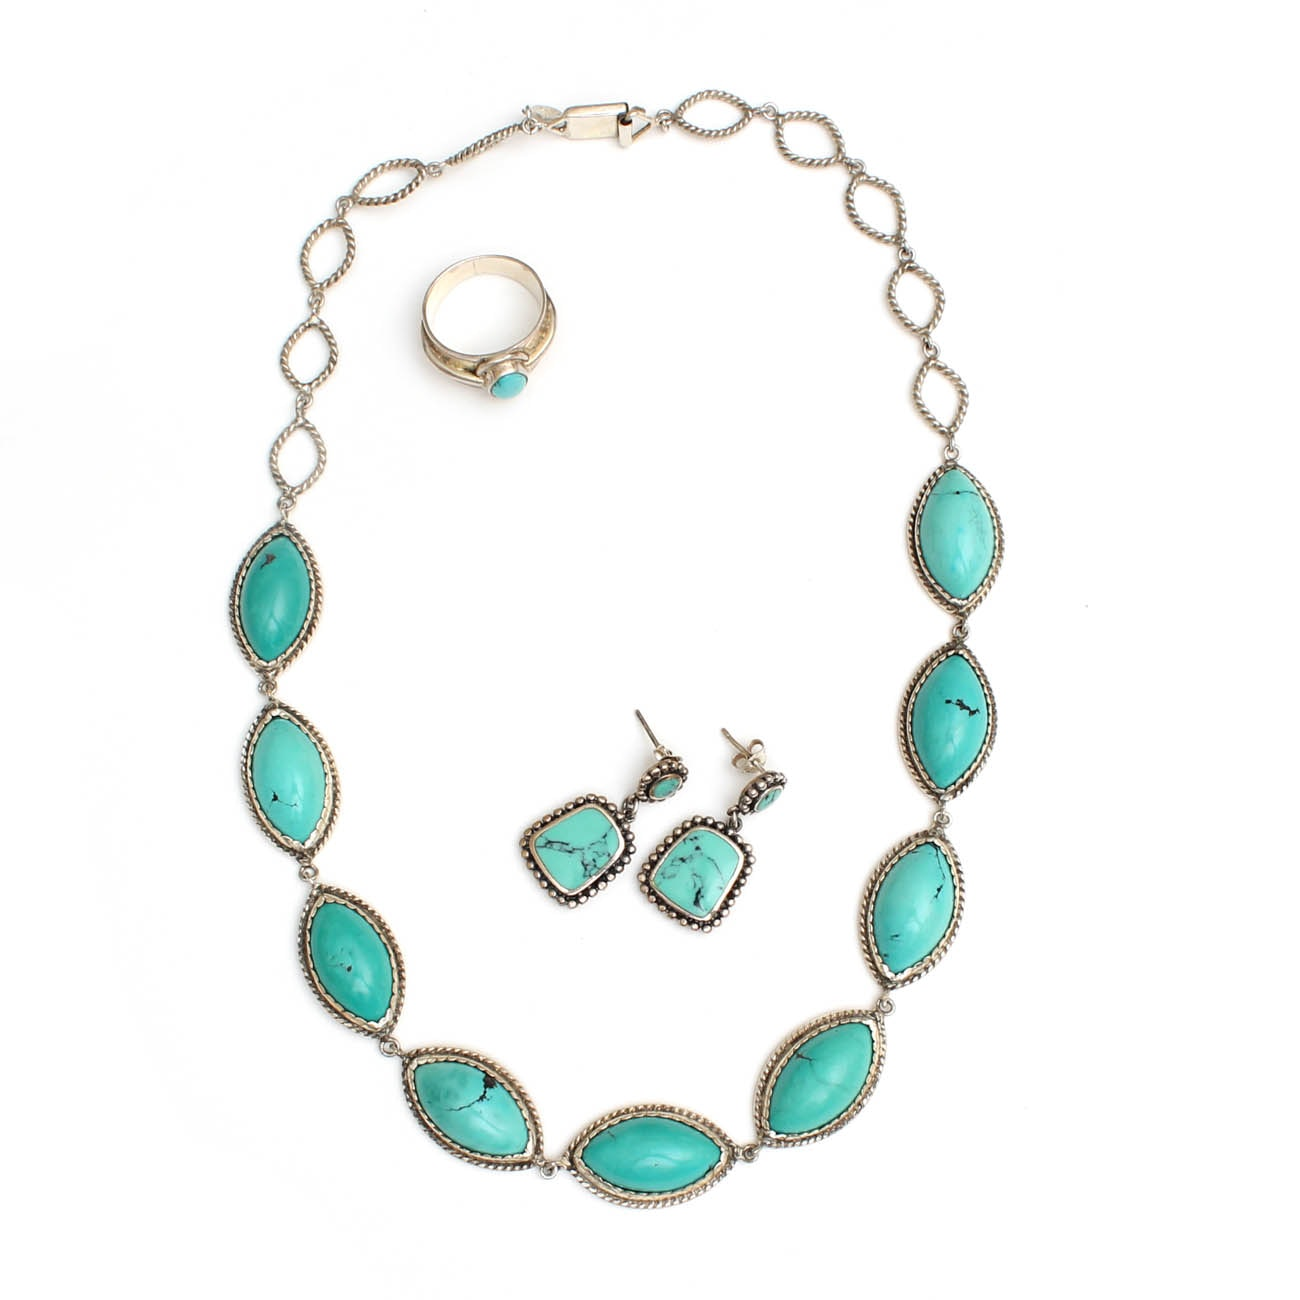 Sterling Silver Jewelry with Gemstones